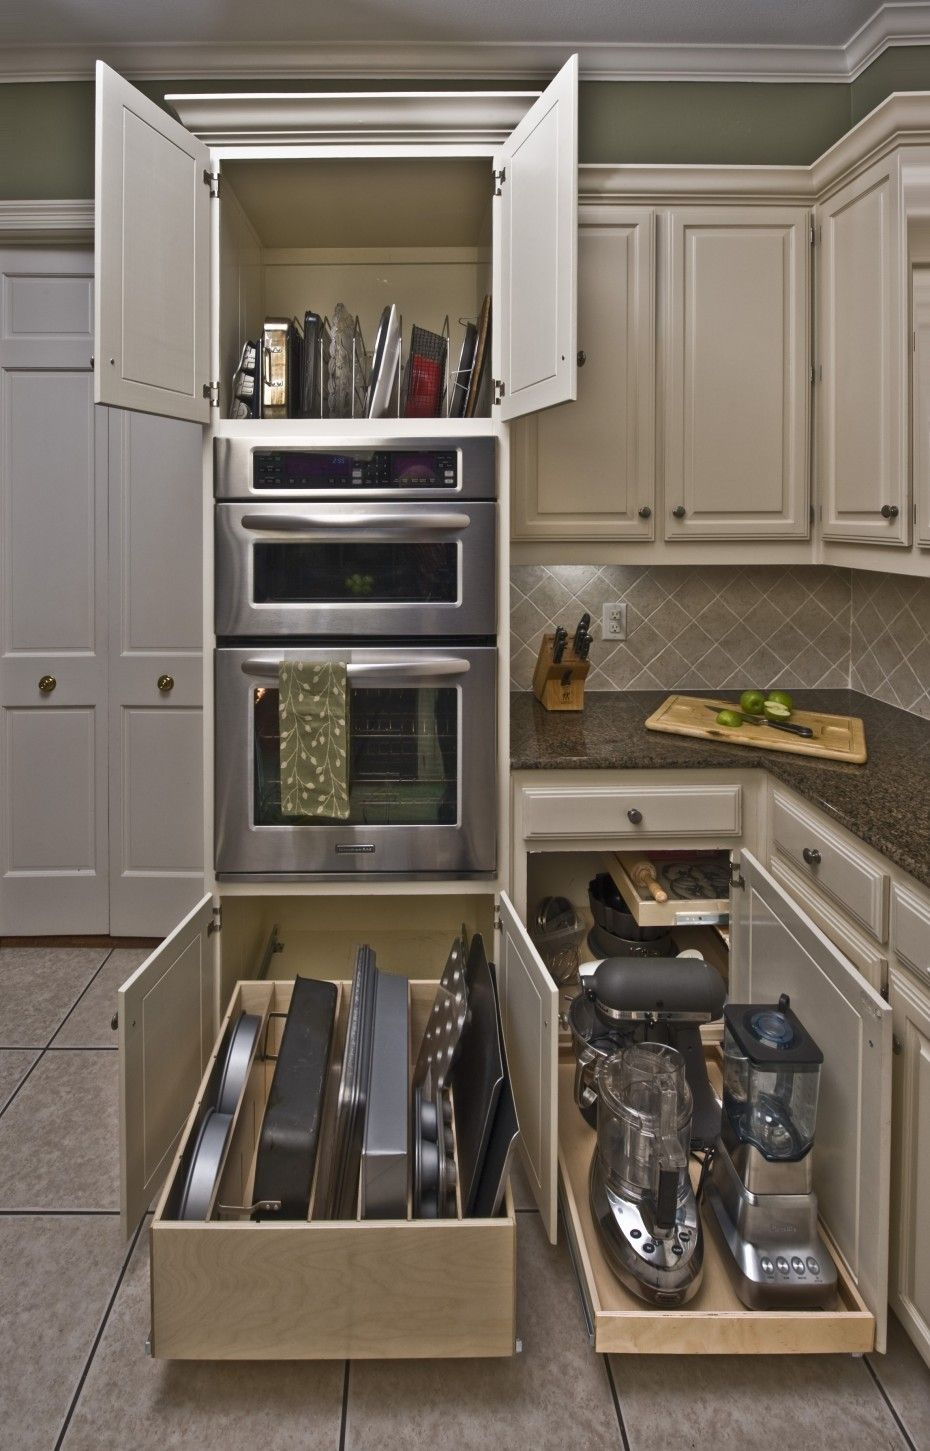 Inspiration Storage. Famed Kitchen Drawers orted Design And ... on cottage kitchen ideas, kitchen diy ideas, kitchen redesign ideas, kitchen fall ideas, kitchen redos before and after, kitchen ideas with tile, kitchen cupboard ideas, cheap kitchen ideas, kitchen decorating on a budget, kitchen countertop ideas on a budget, kitchen recycle ideas, kitchen flooring ideas, kitchen renew ideas, kitchen improvement ideas, kitchen rebuild ideas, small kitchen ideas, kitchen makeover ideas, kitchen remodeling ideas, hgtv kitchen ideas, vintage kitchen ideas,